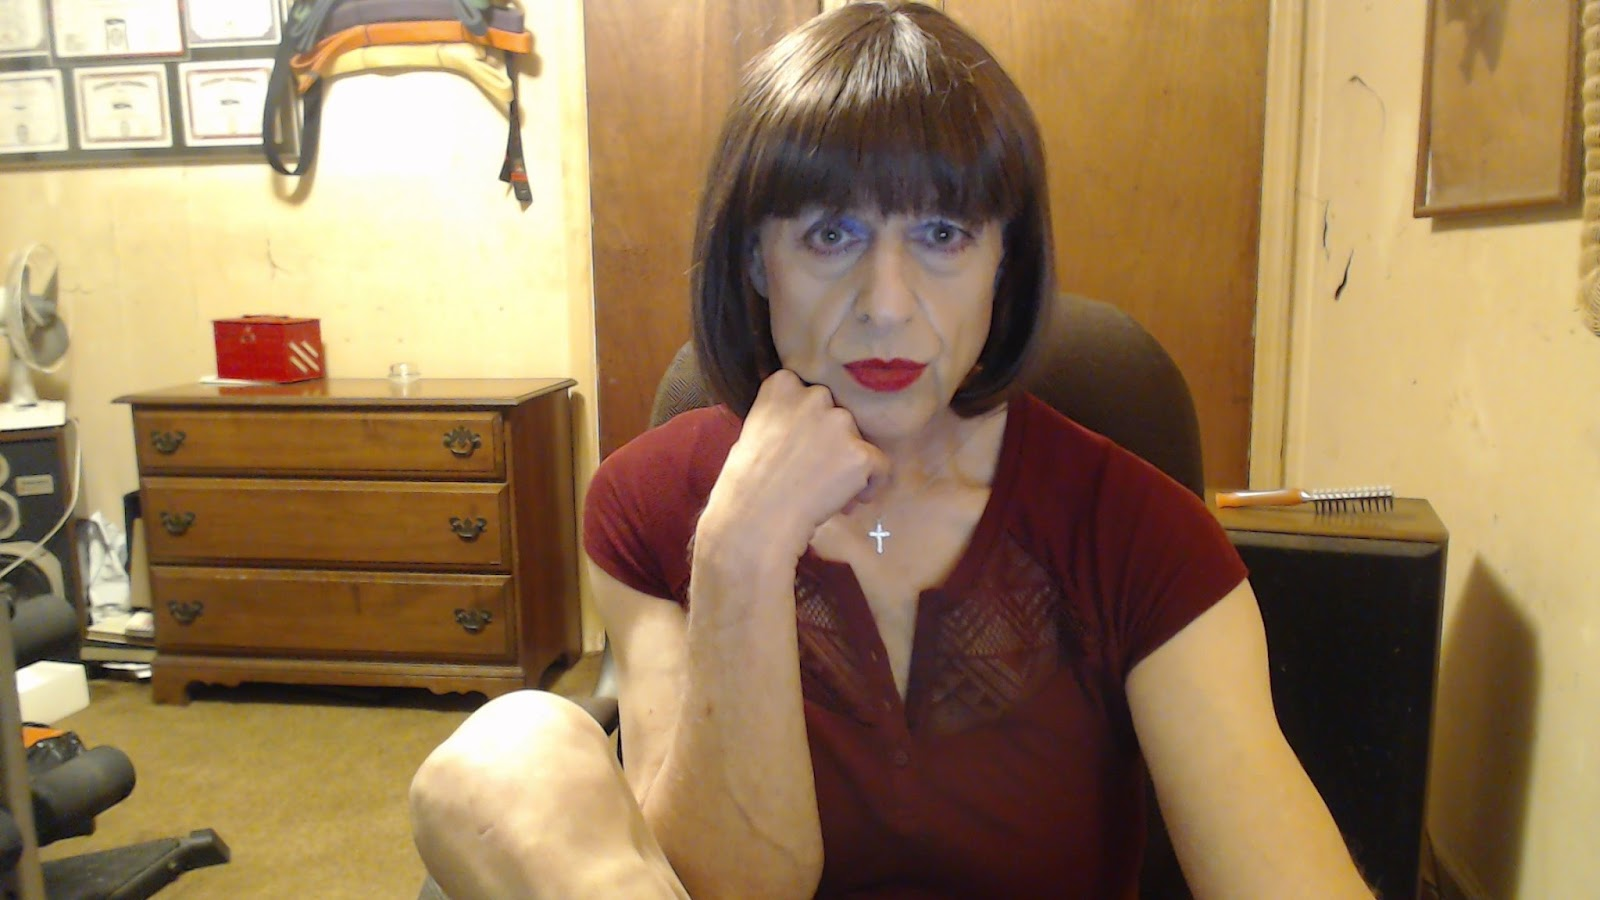 trans chat sites 100% free trans chat rooms at mingle2com join the hottest trans chatrooms online mingle2's trans chat rooms are full of fun, sexy singles like you sign up for your free trans chat account now and meet hundreds of jonkopings lan singles online.